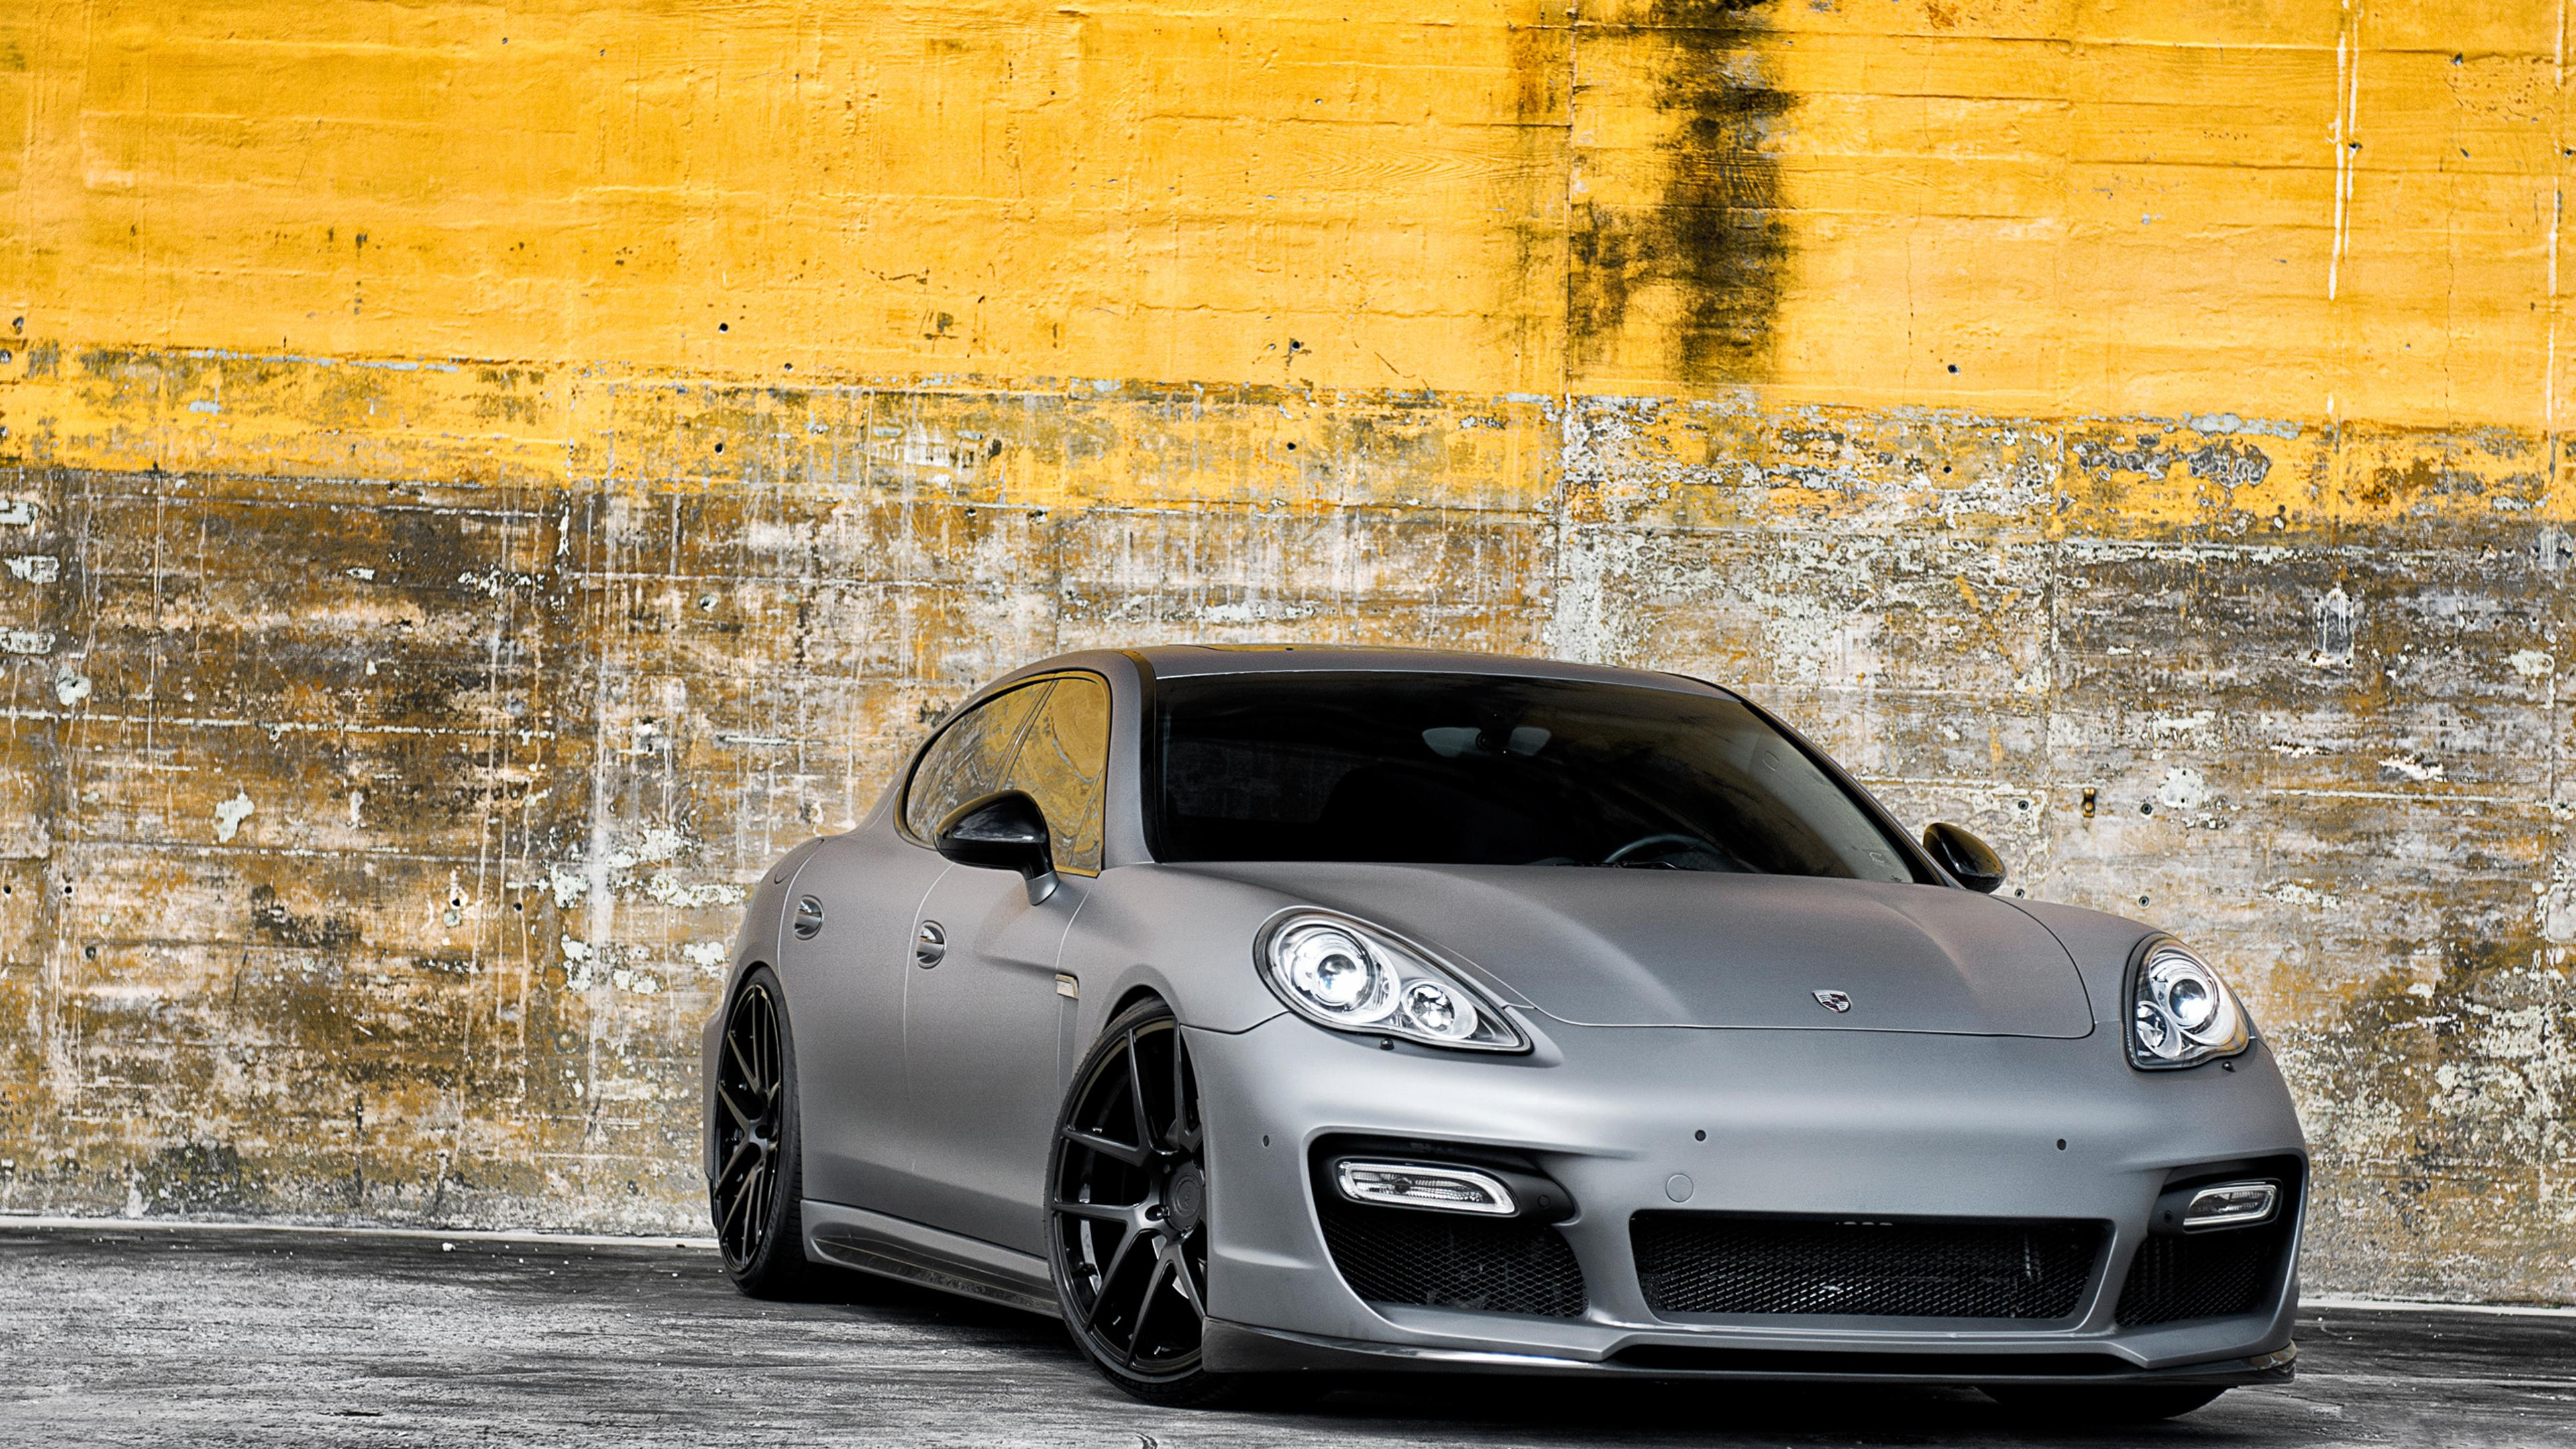 Grey Porsche Panamera With Black Rims